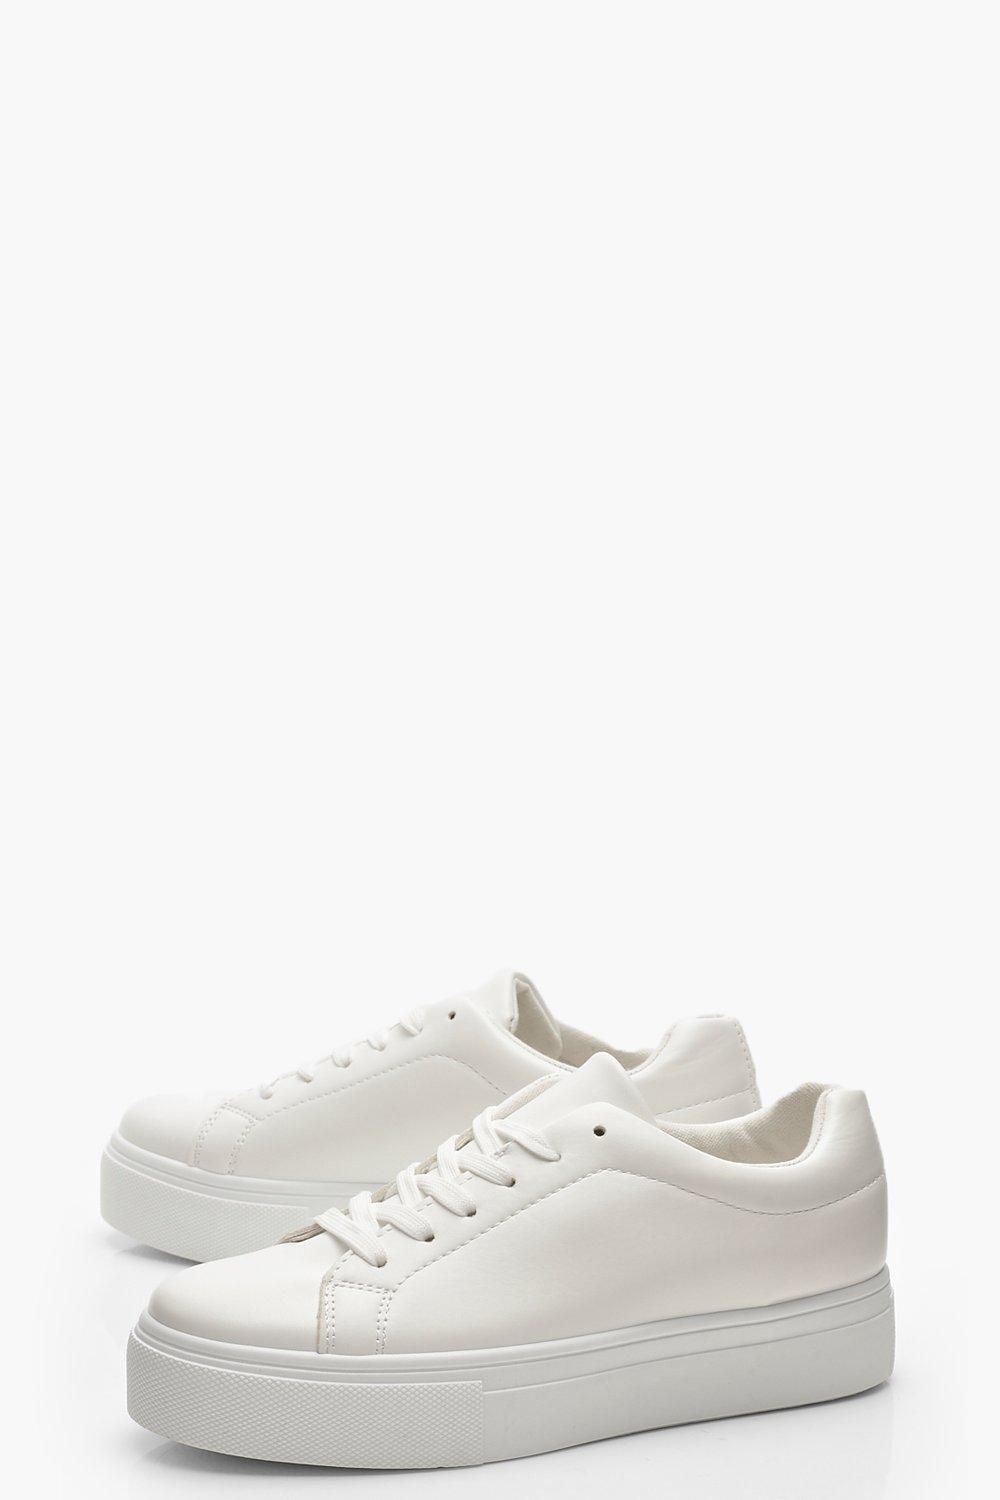 Lace Up Platform Sneakers   boohoo